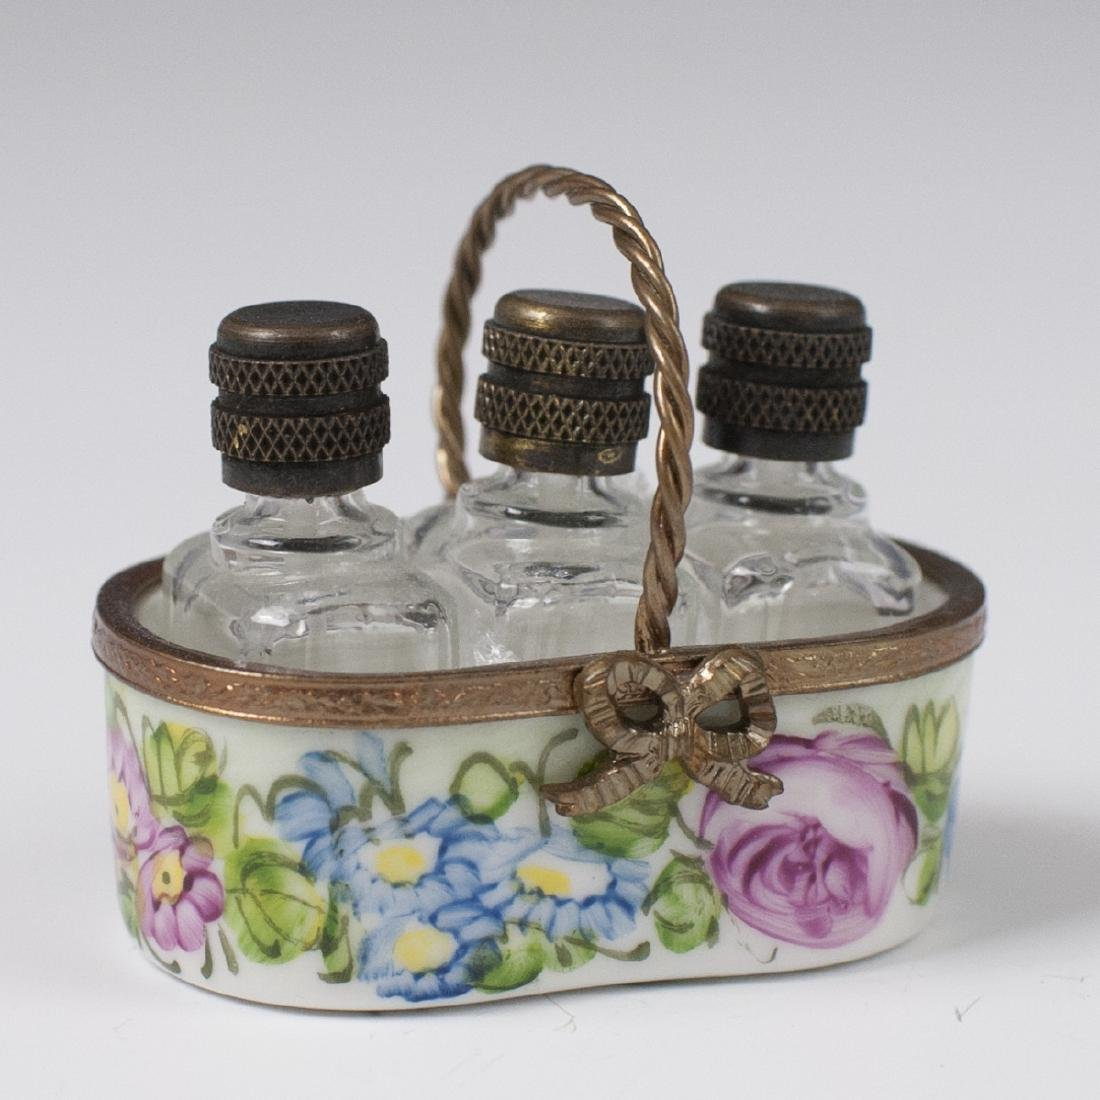 Limoges Porcelain Perfume Bottle Basket - 2